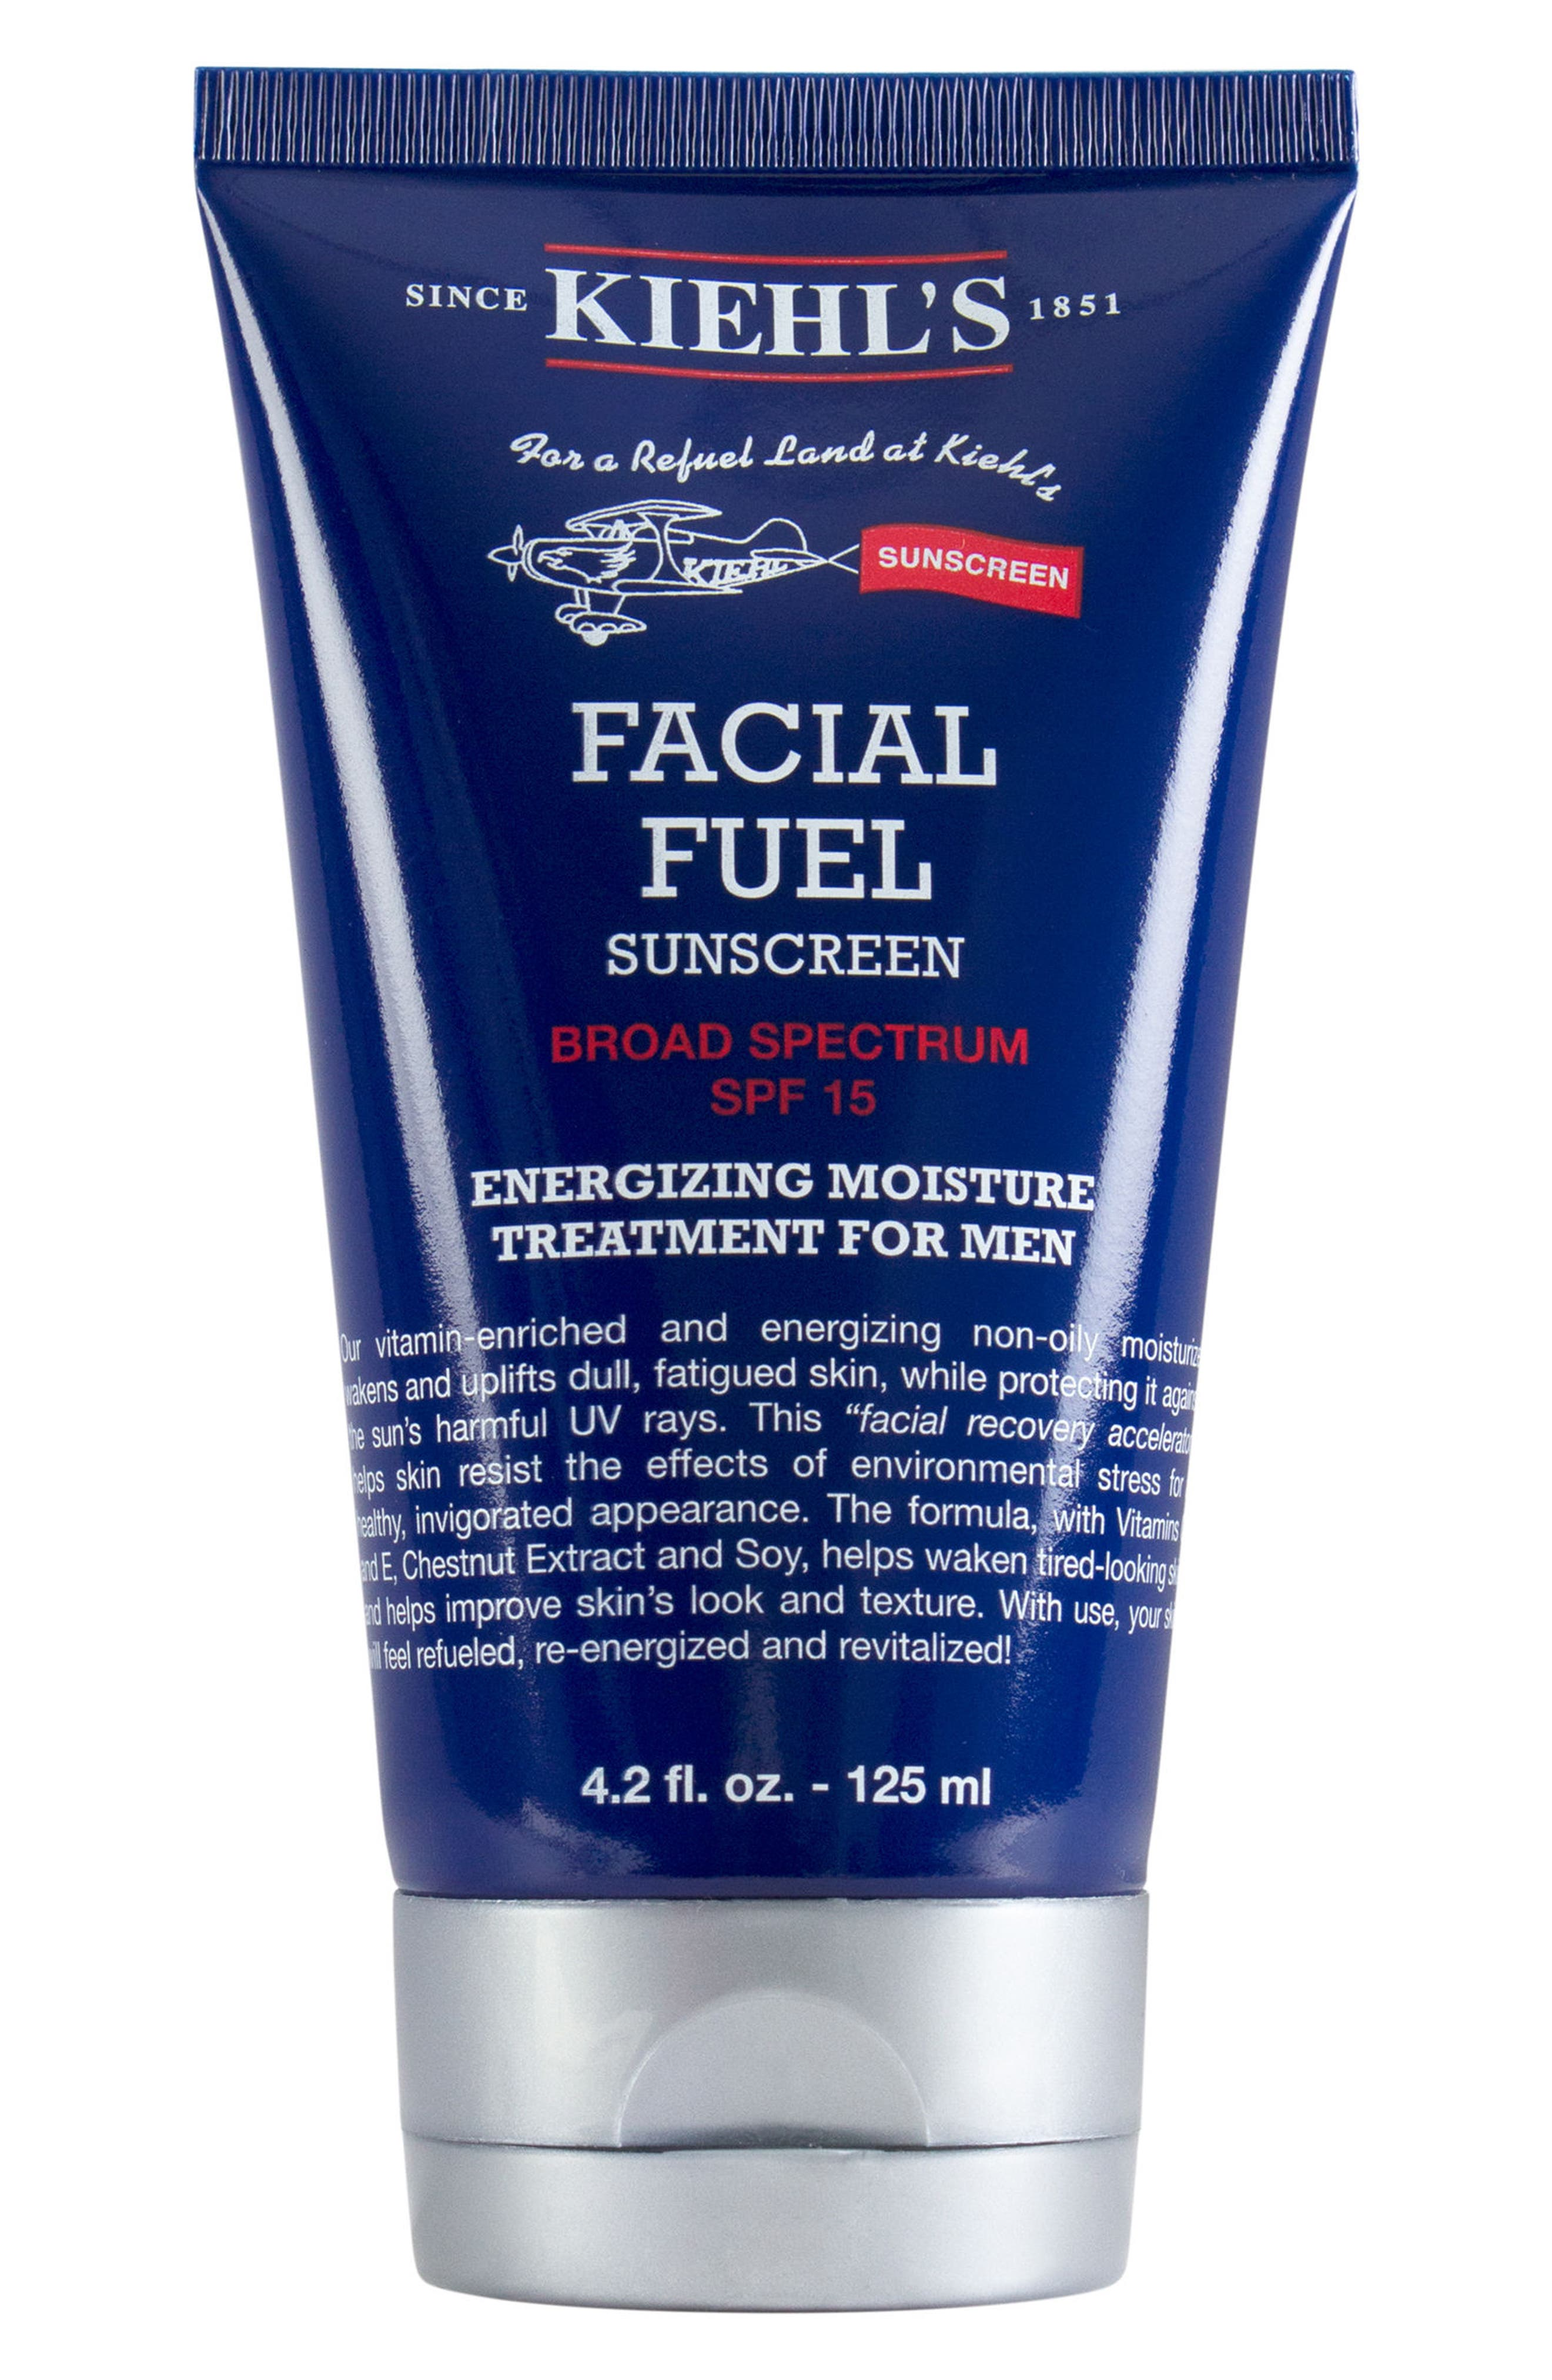 Facial Fuel Energizing Moisture Treatment for Men SPF 15,                         Main,                         color, NO COLOR